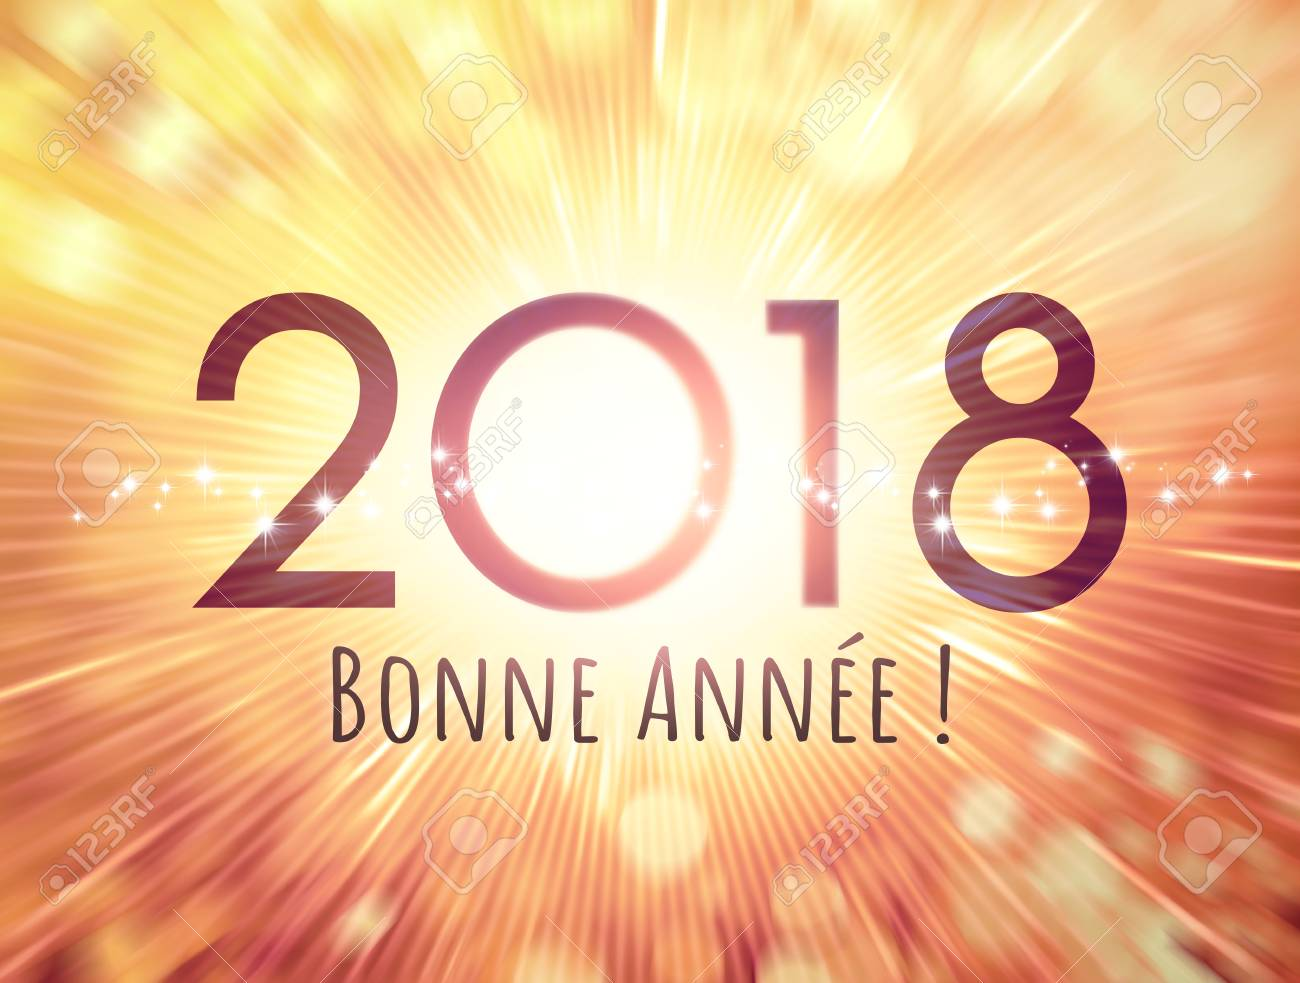 New year date 2018 and greetings in french language on a shiny new year date 2018 and greetings in french language on a shiny glittering background stock m4hsunfo